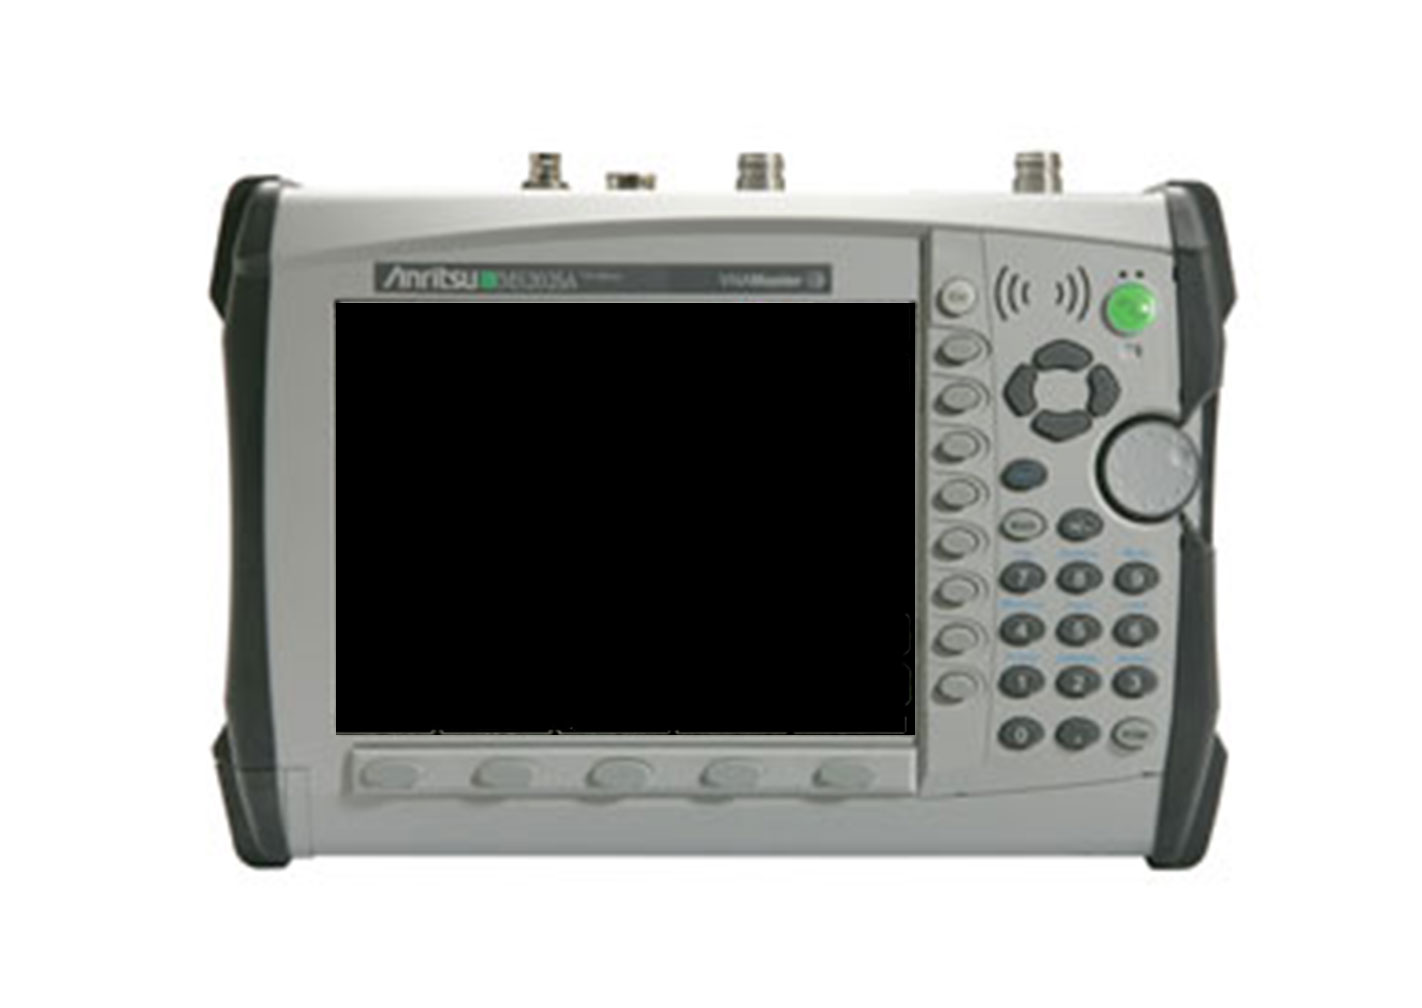 Network Analyzer Rental